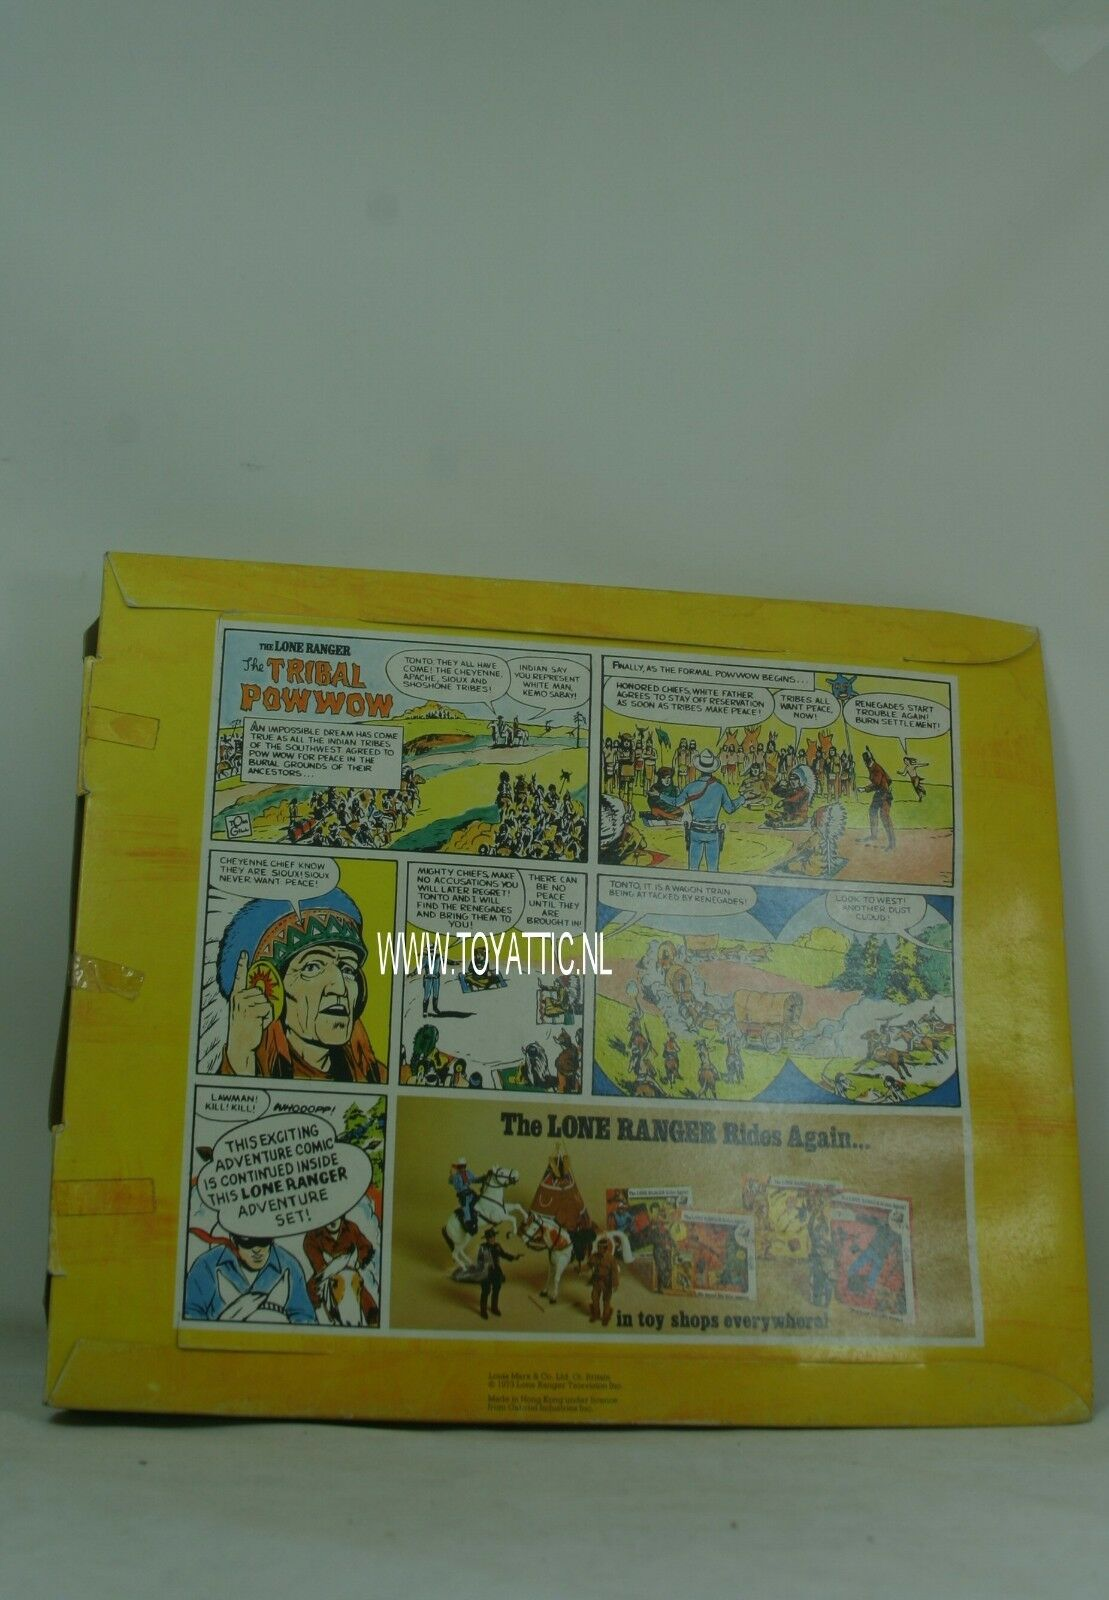 Lone ranger 1973 The The The Tribal Powwow accessoiry set fashion by Marx Toys no, 7426 d577fd